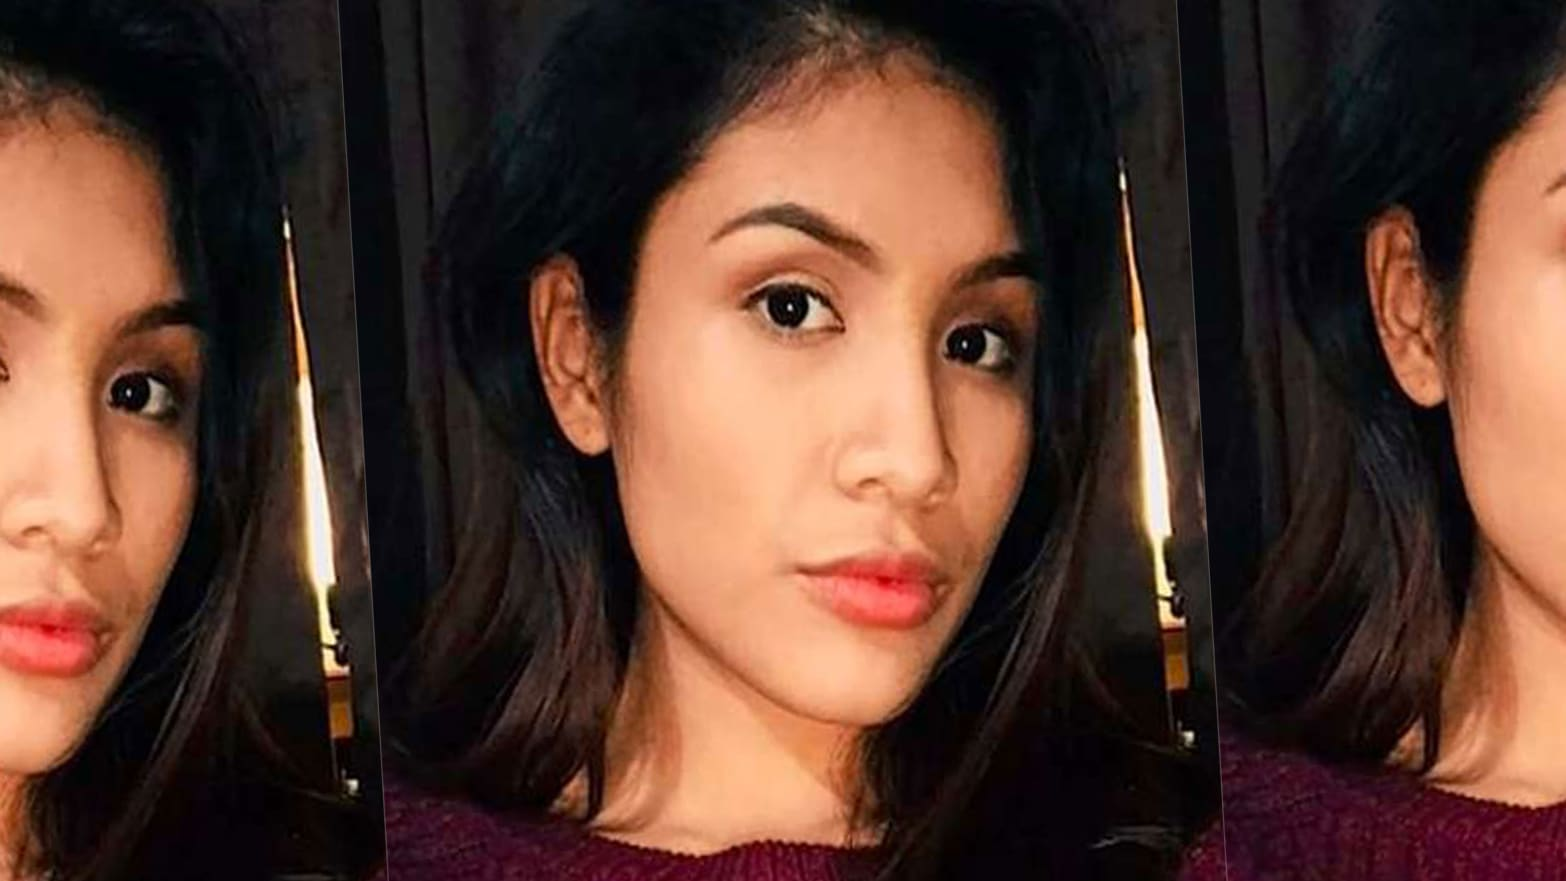 8cd608ebcaffd Mother, Daughter Killed Pregnant Teen With Cable and Ripped Baby From Womb:  Police. '